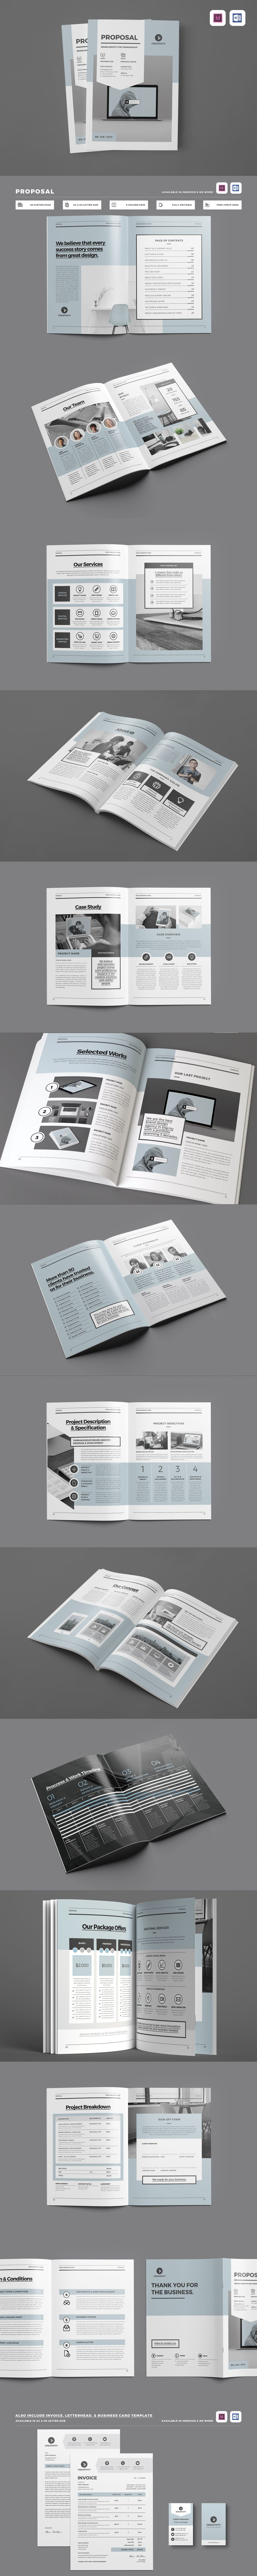 Clean professional proposal template with include a4 us letter clean professional proposal template with include a4 us letter size indesign indd accmission Gallery